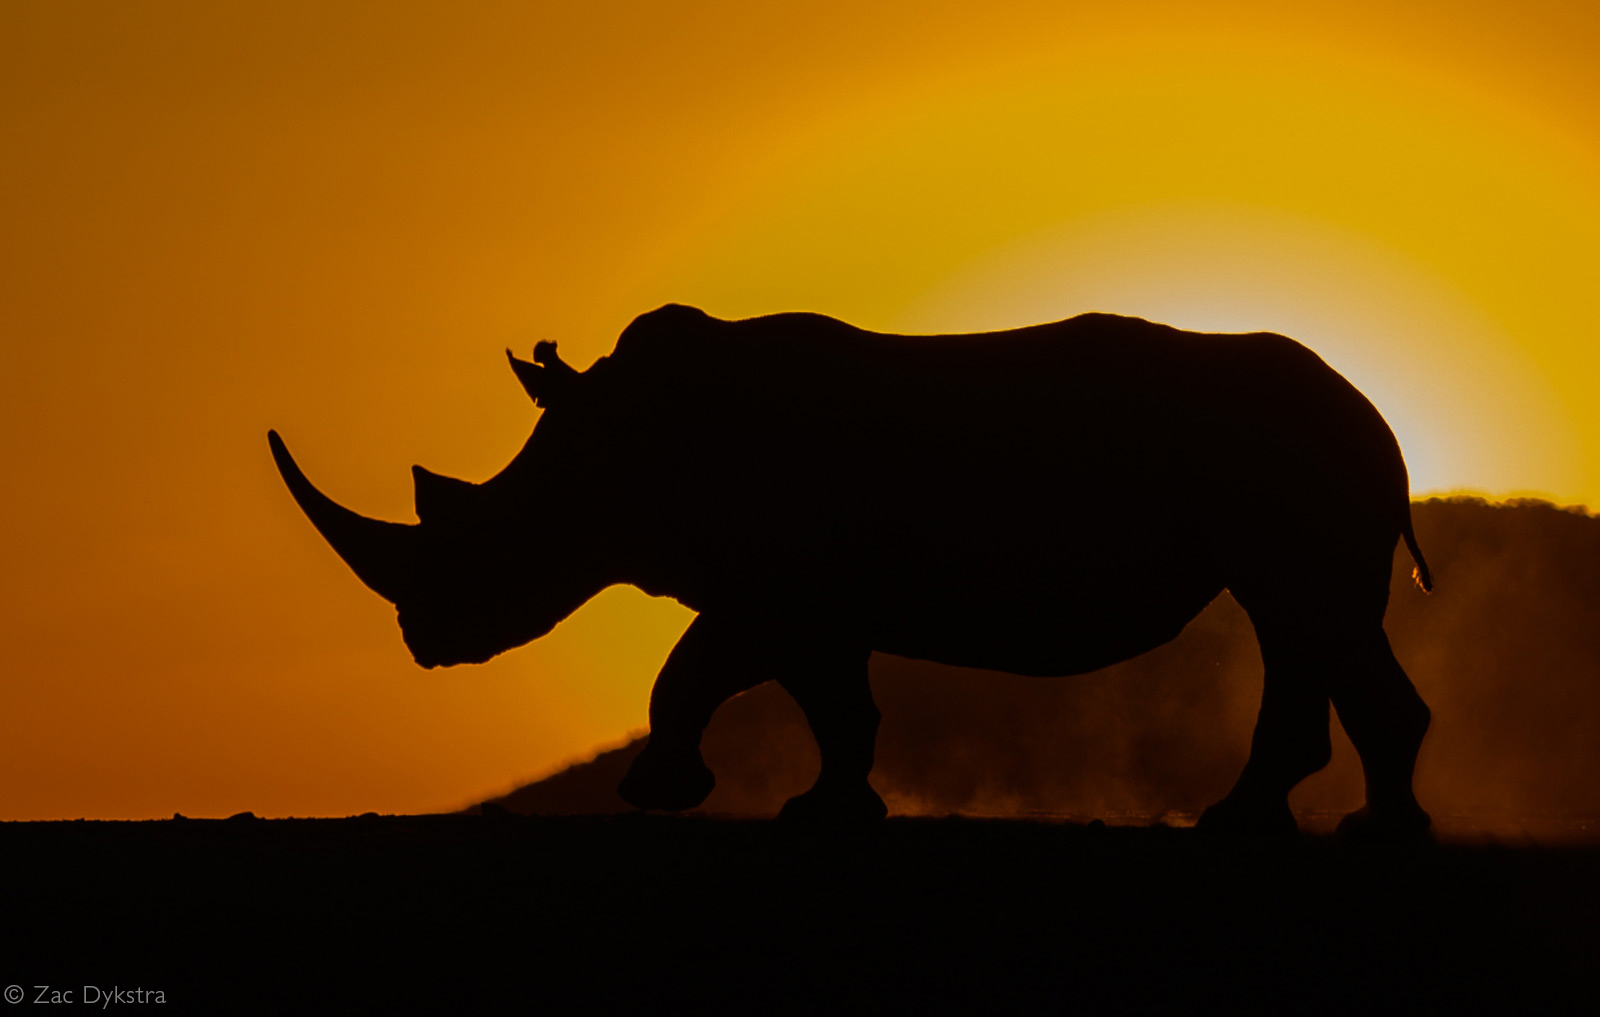 Rhino silhouette at sunset. Game reserve in South Africa © Zac Dykstra